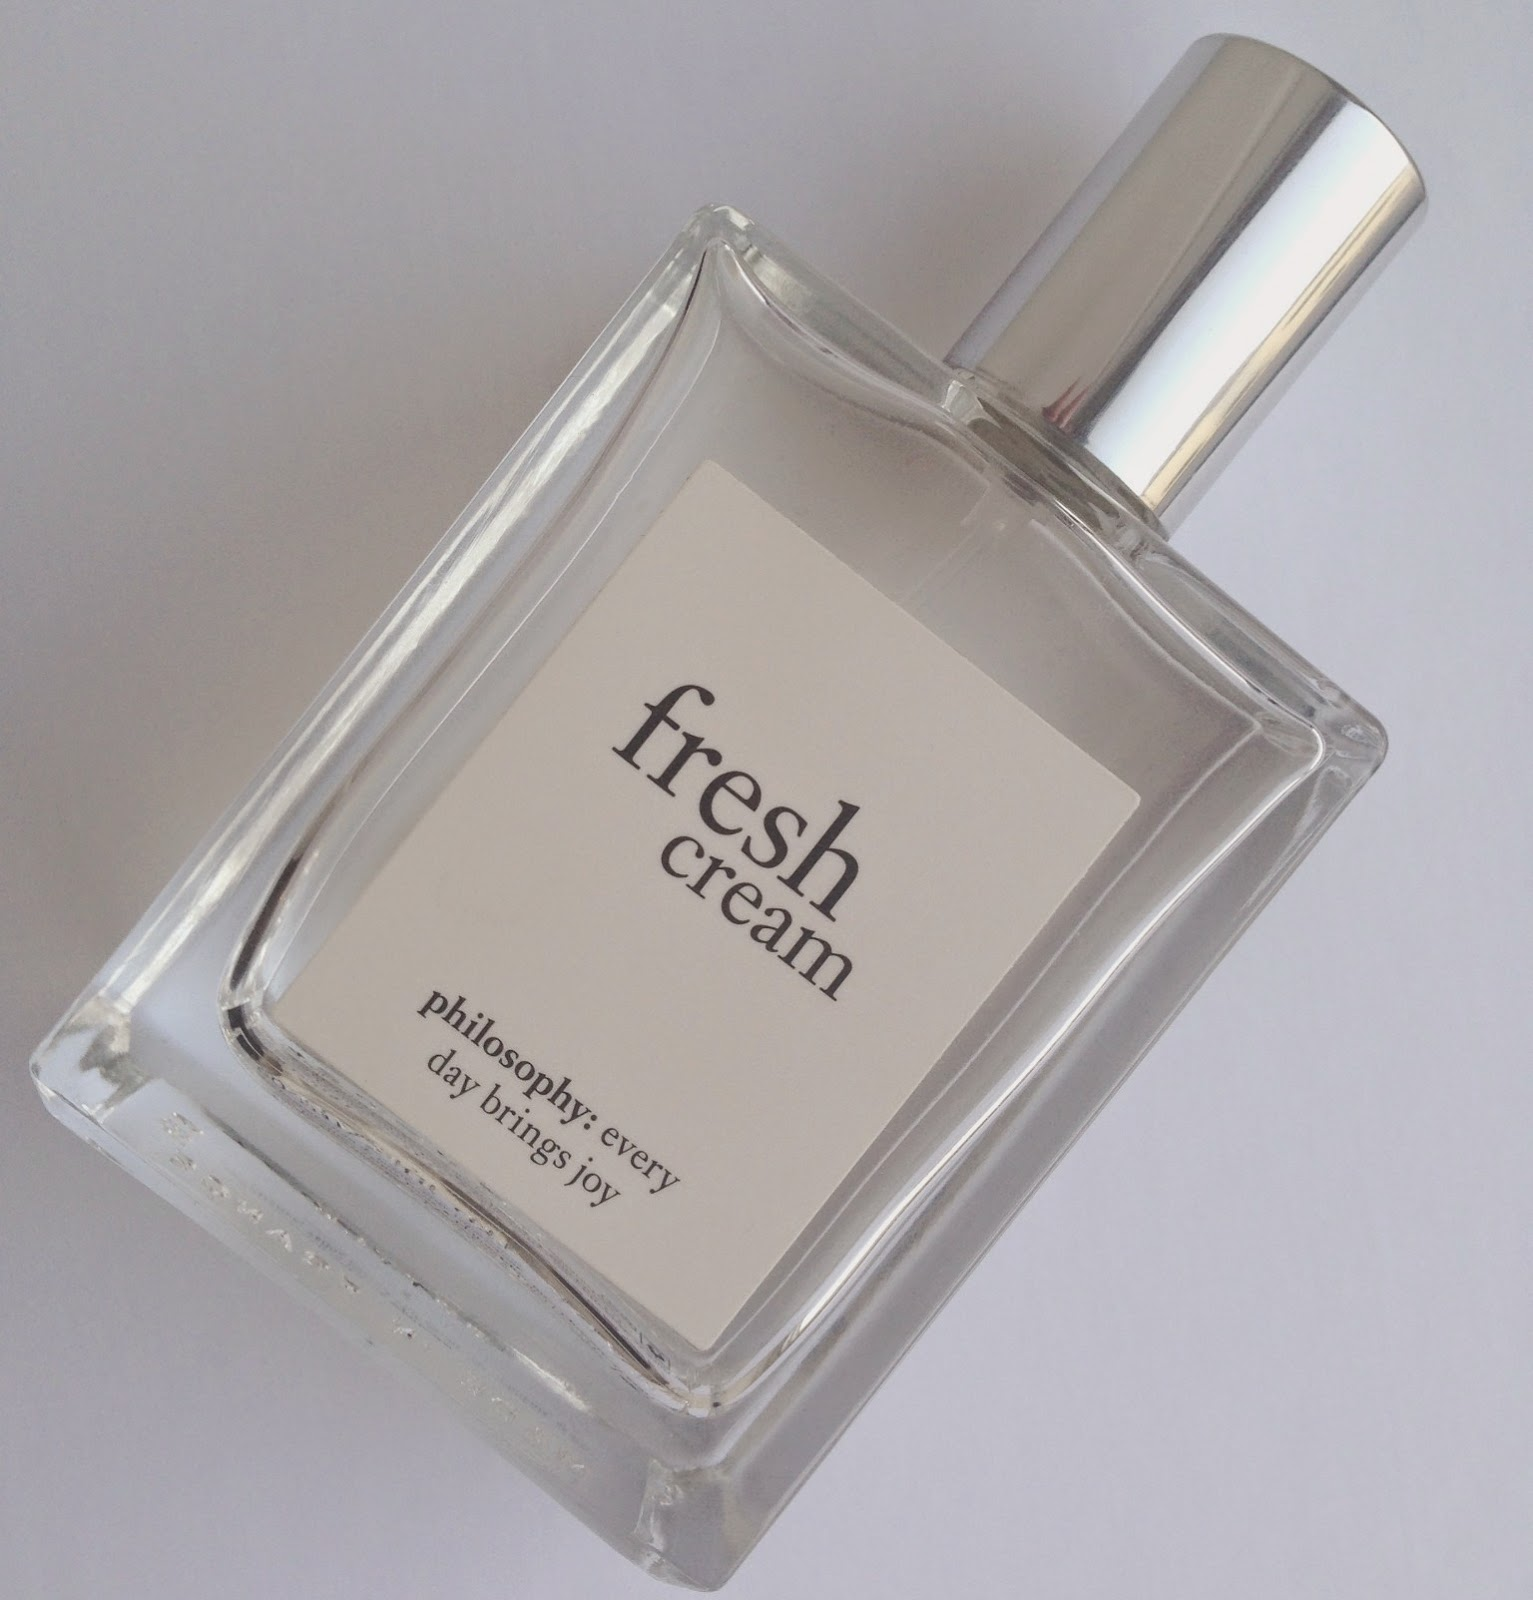 Philosophy fresh cream fragrance bottle image